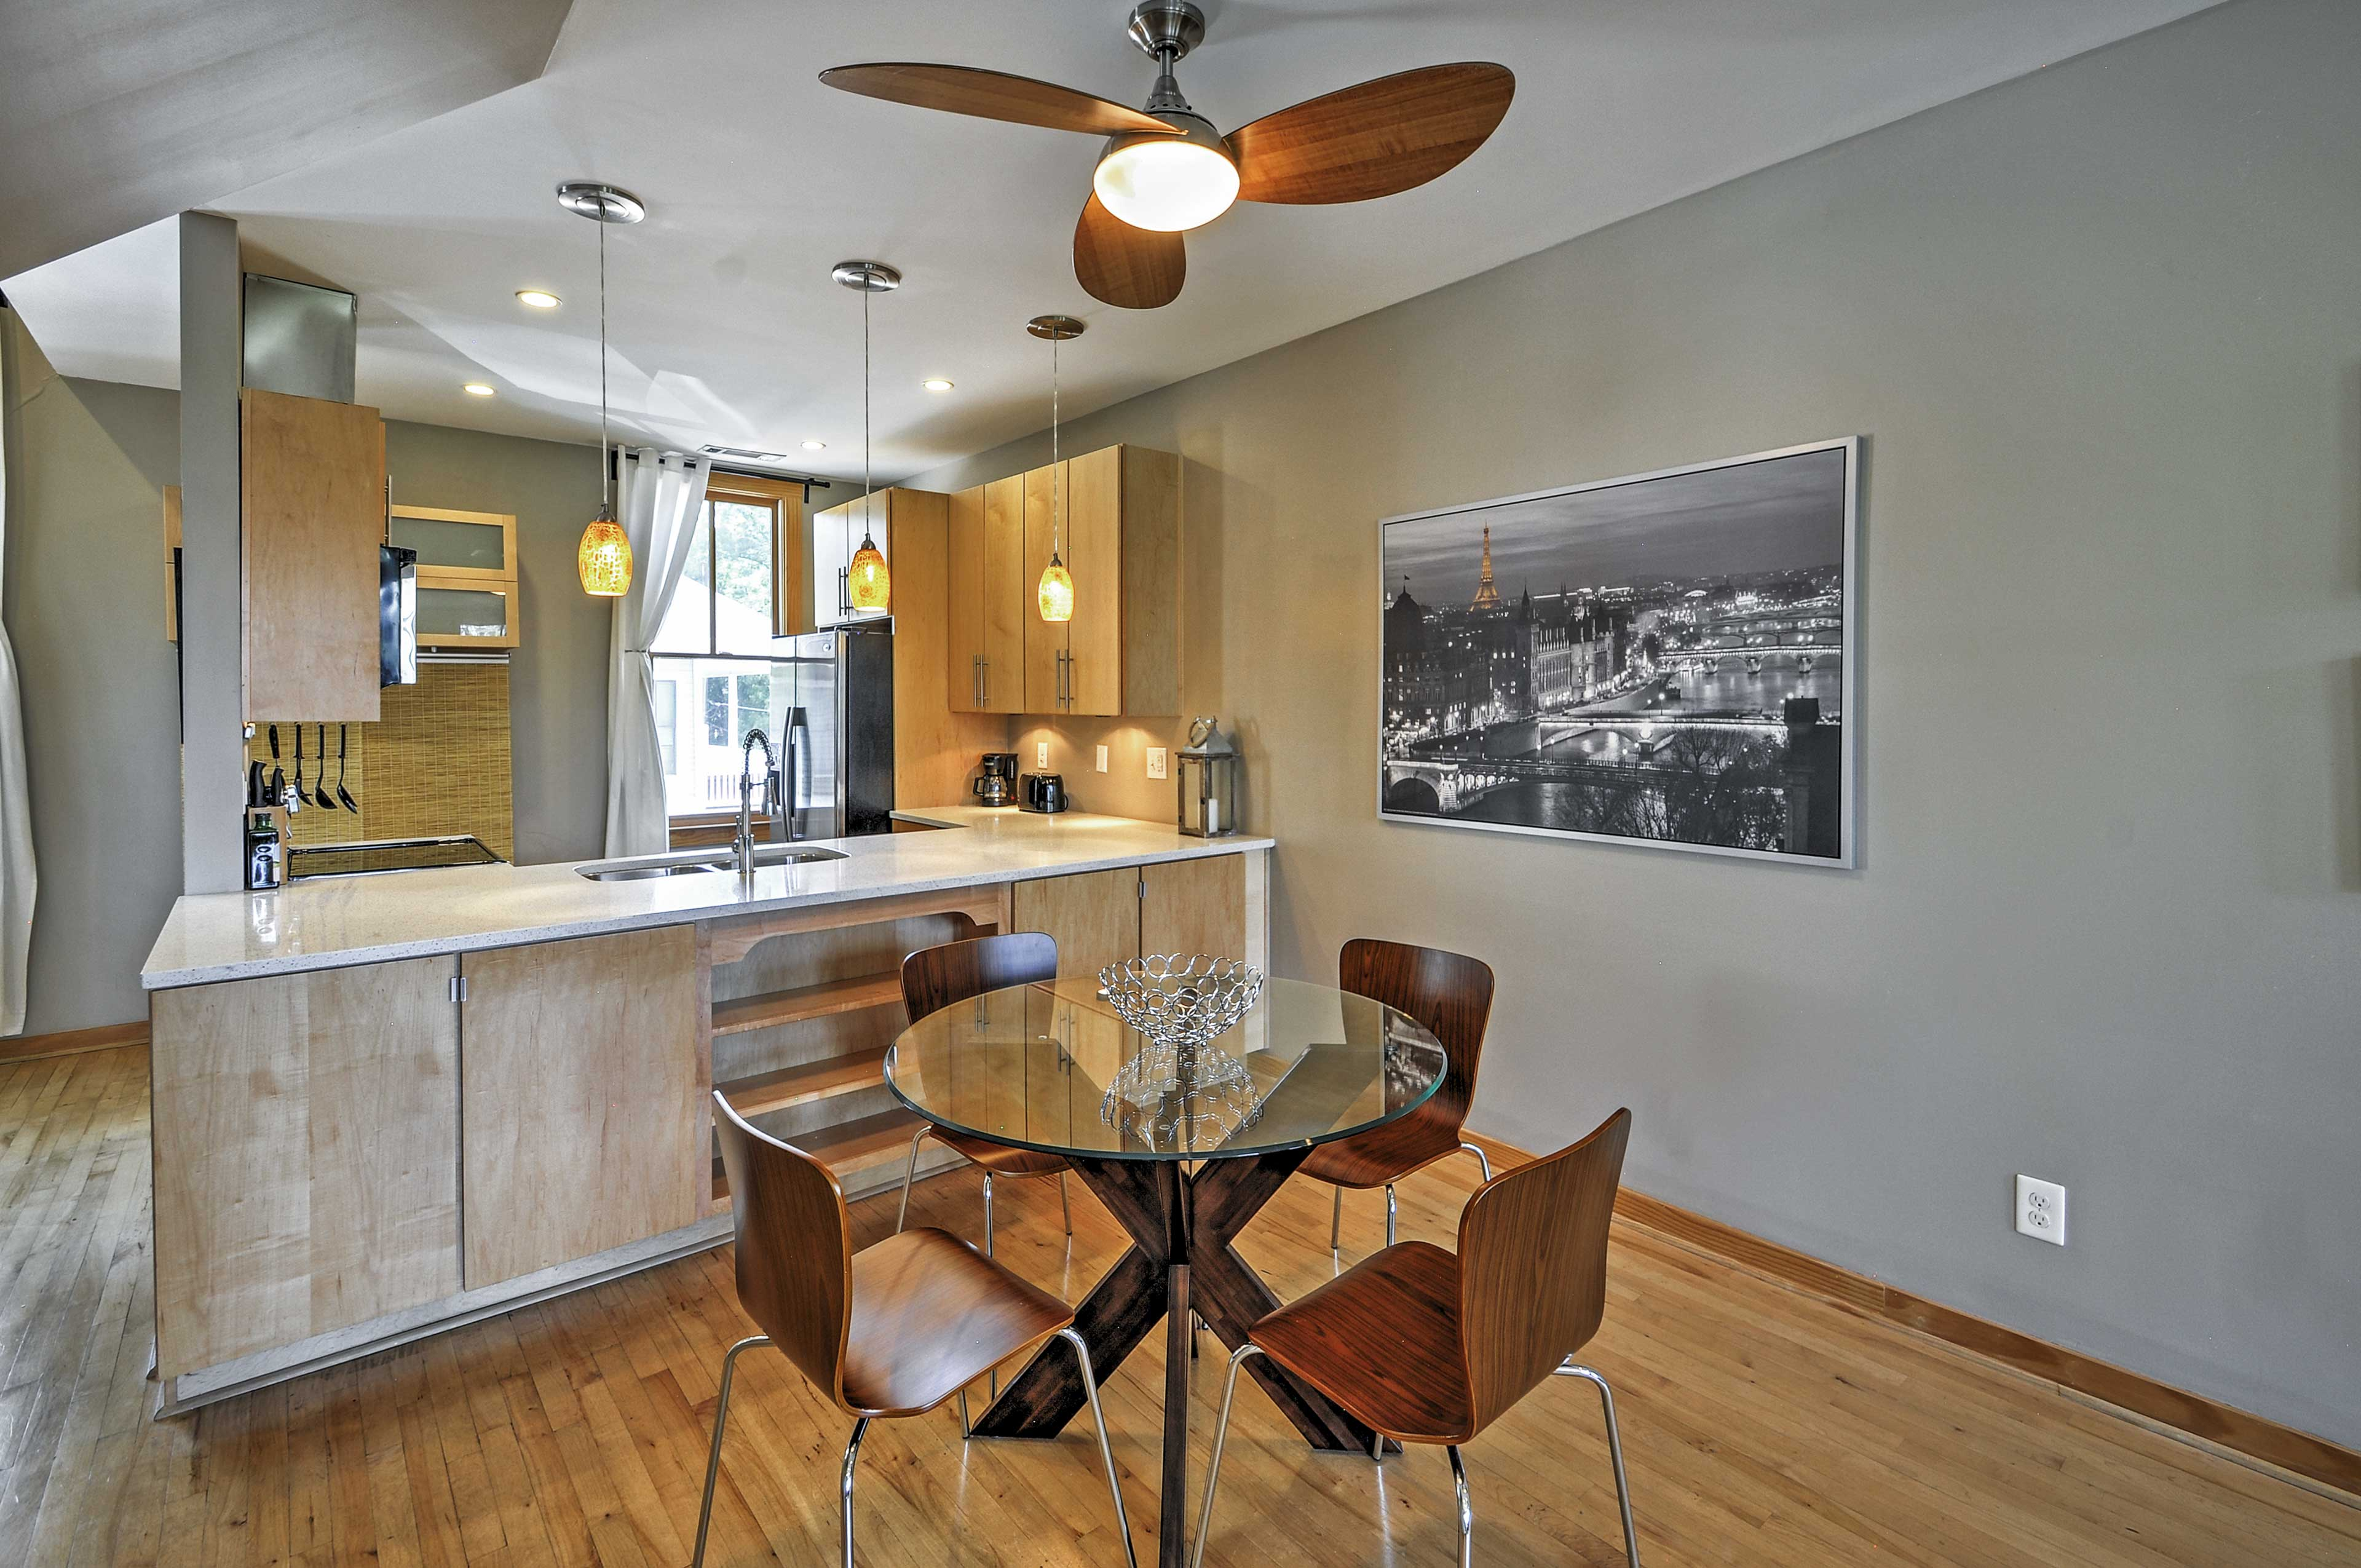 Enjoy a meal with your family at this dining table.